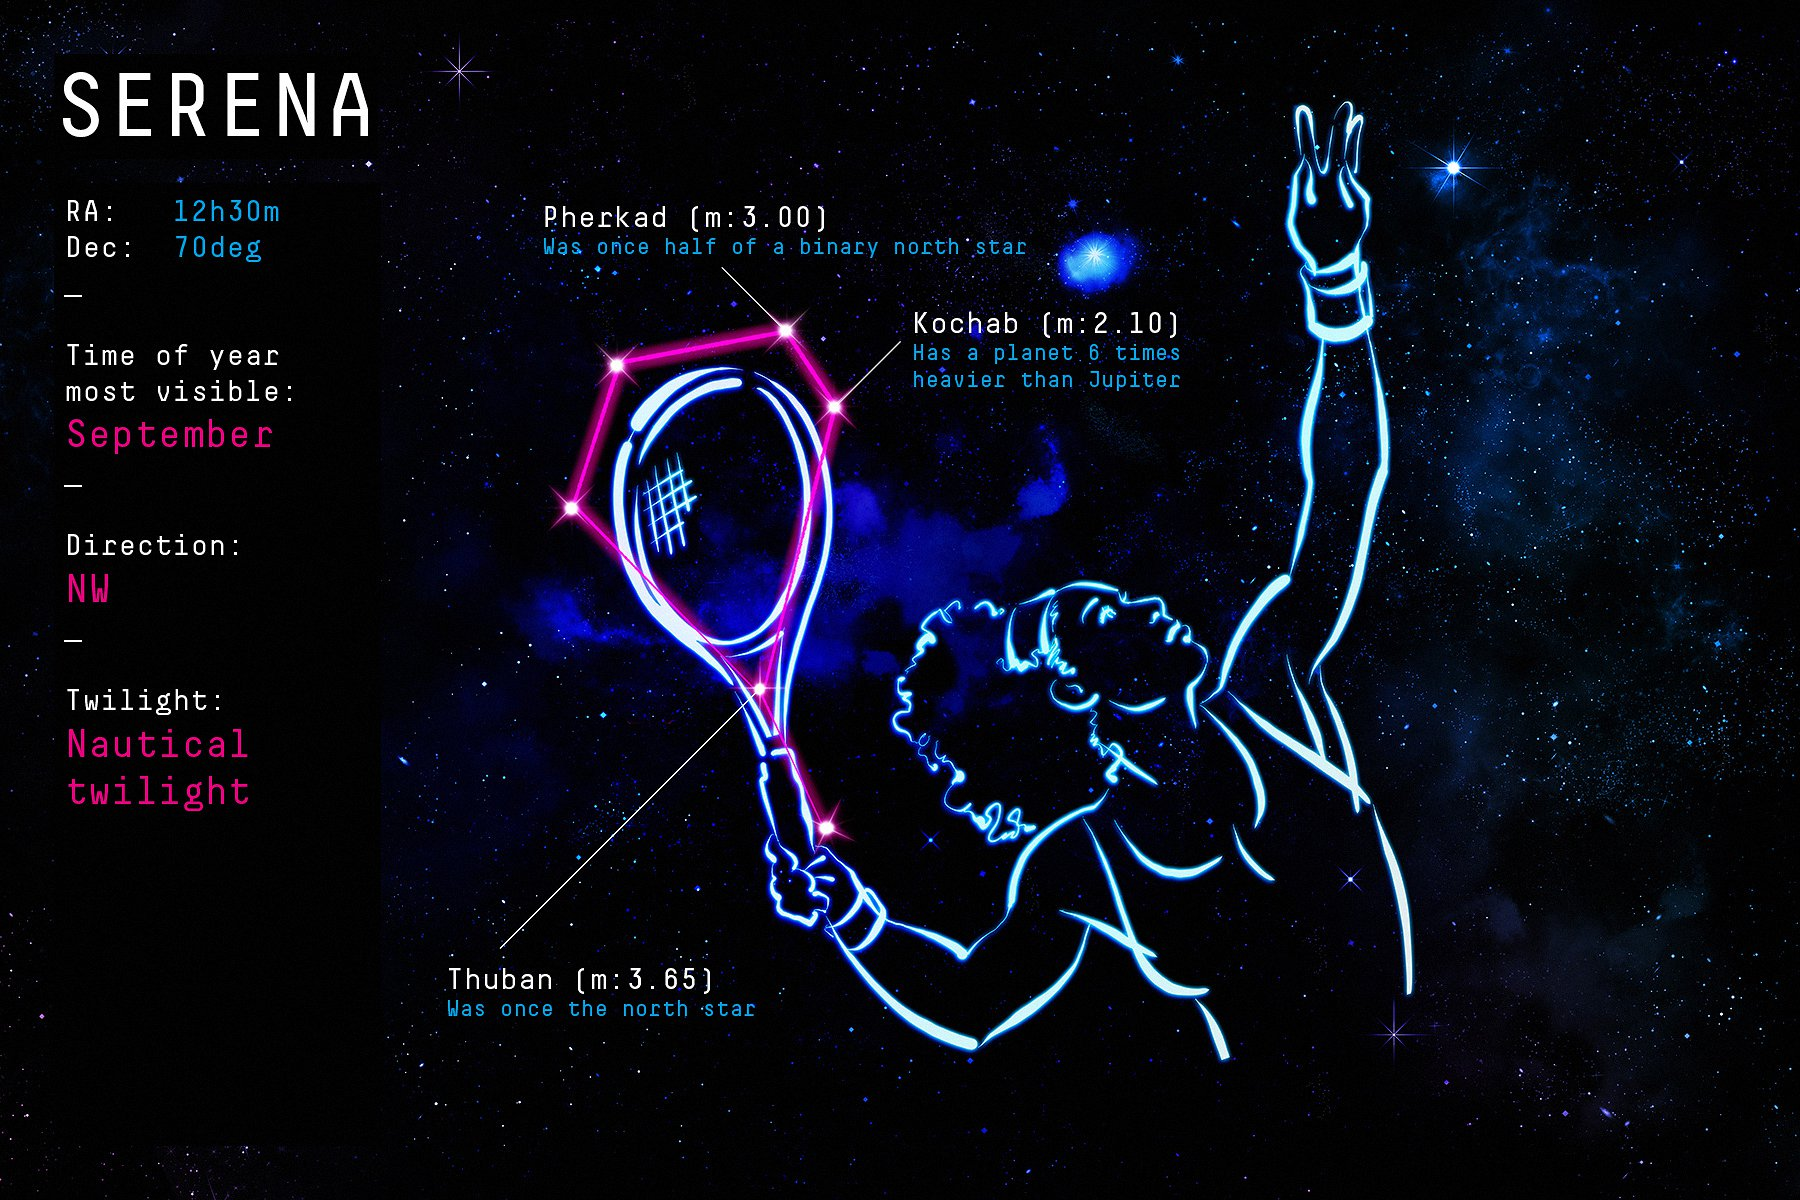 serena-williams-constellation-detail.jpg